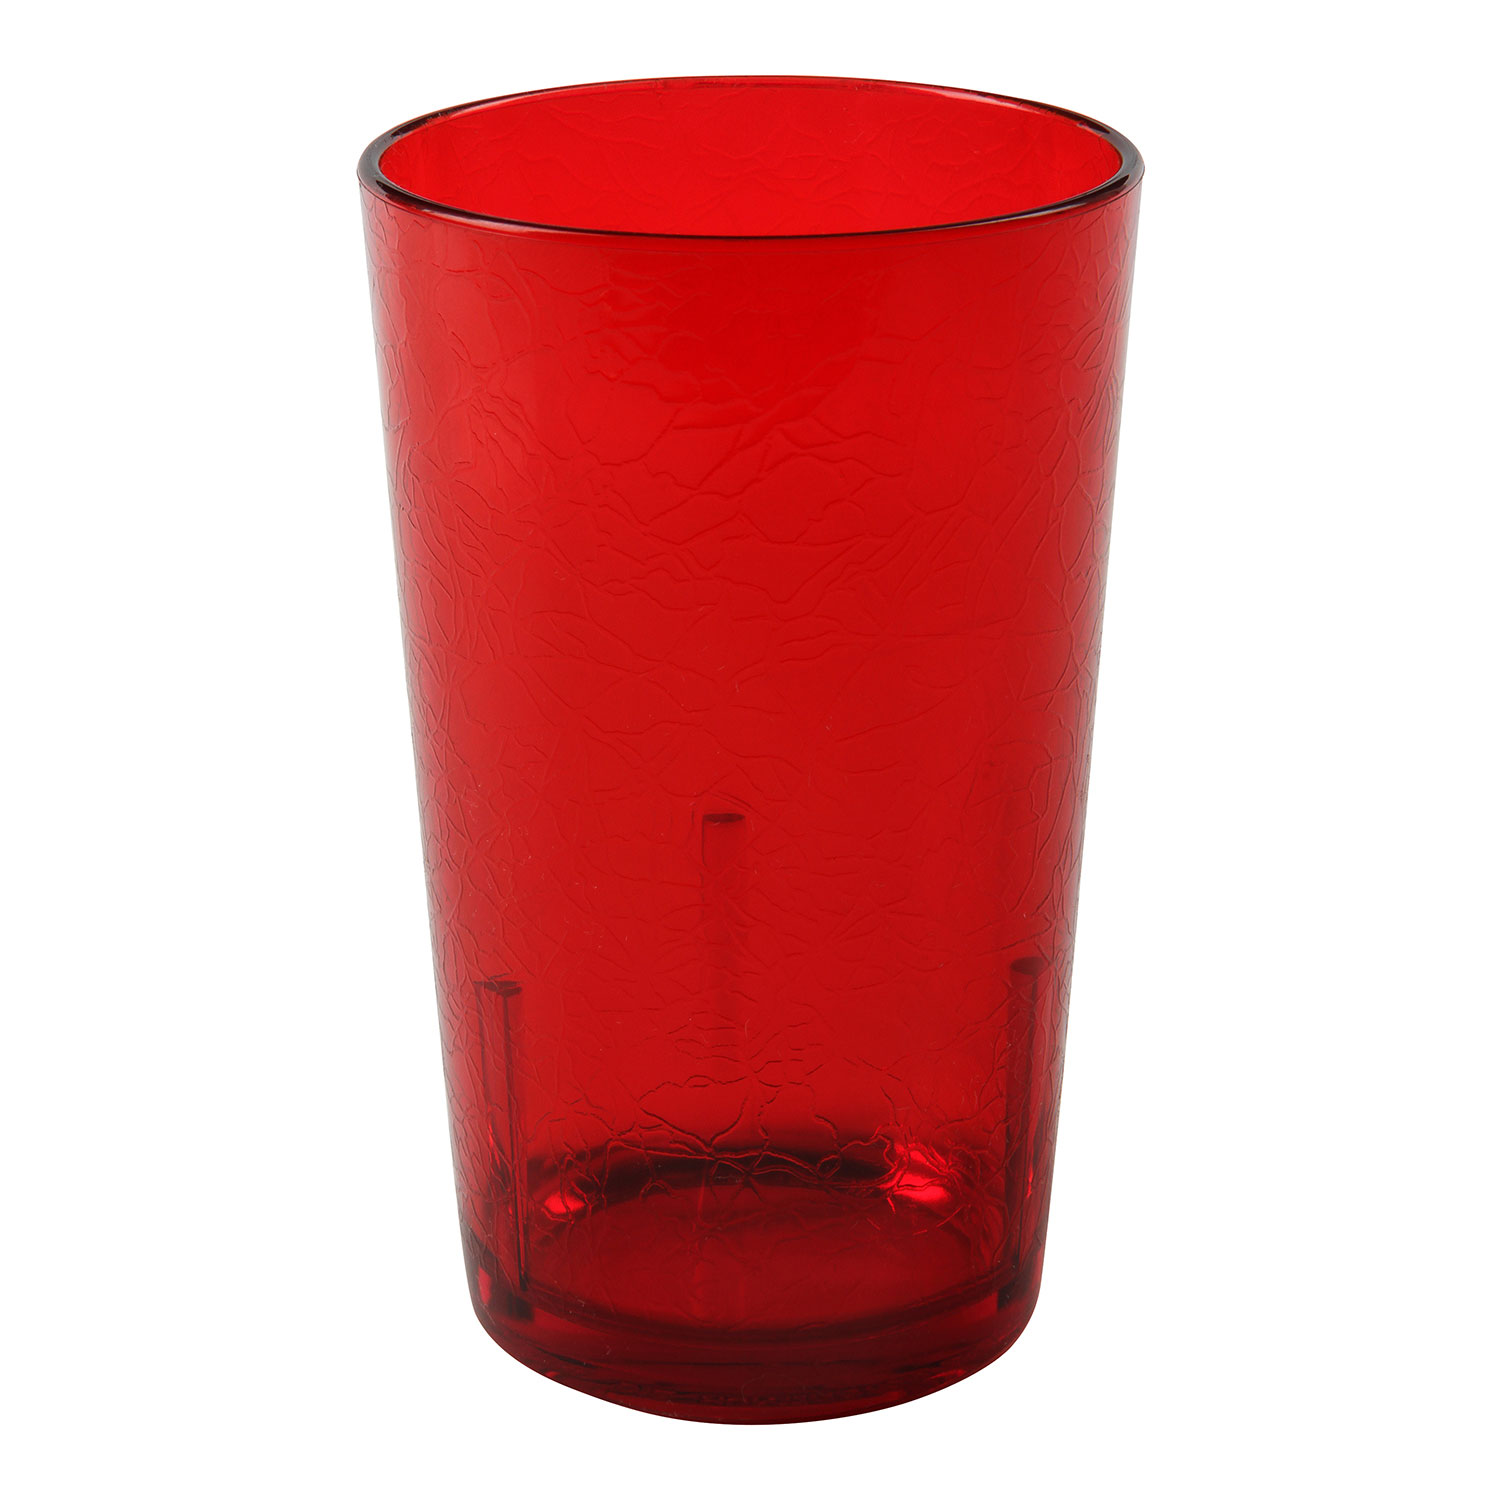 Cambro D12156 serving/drinking glasses